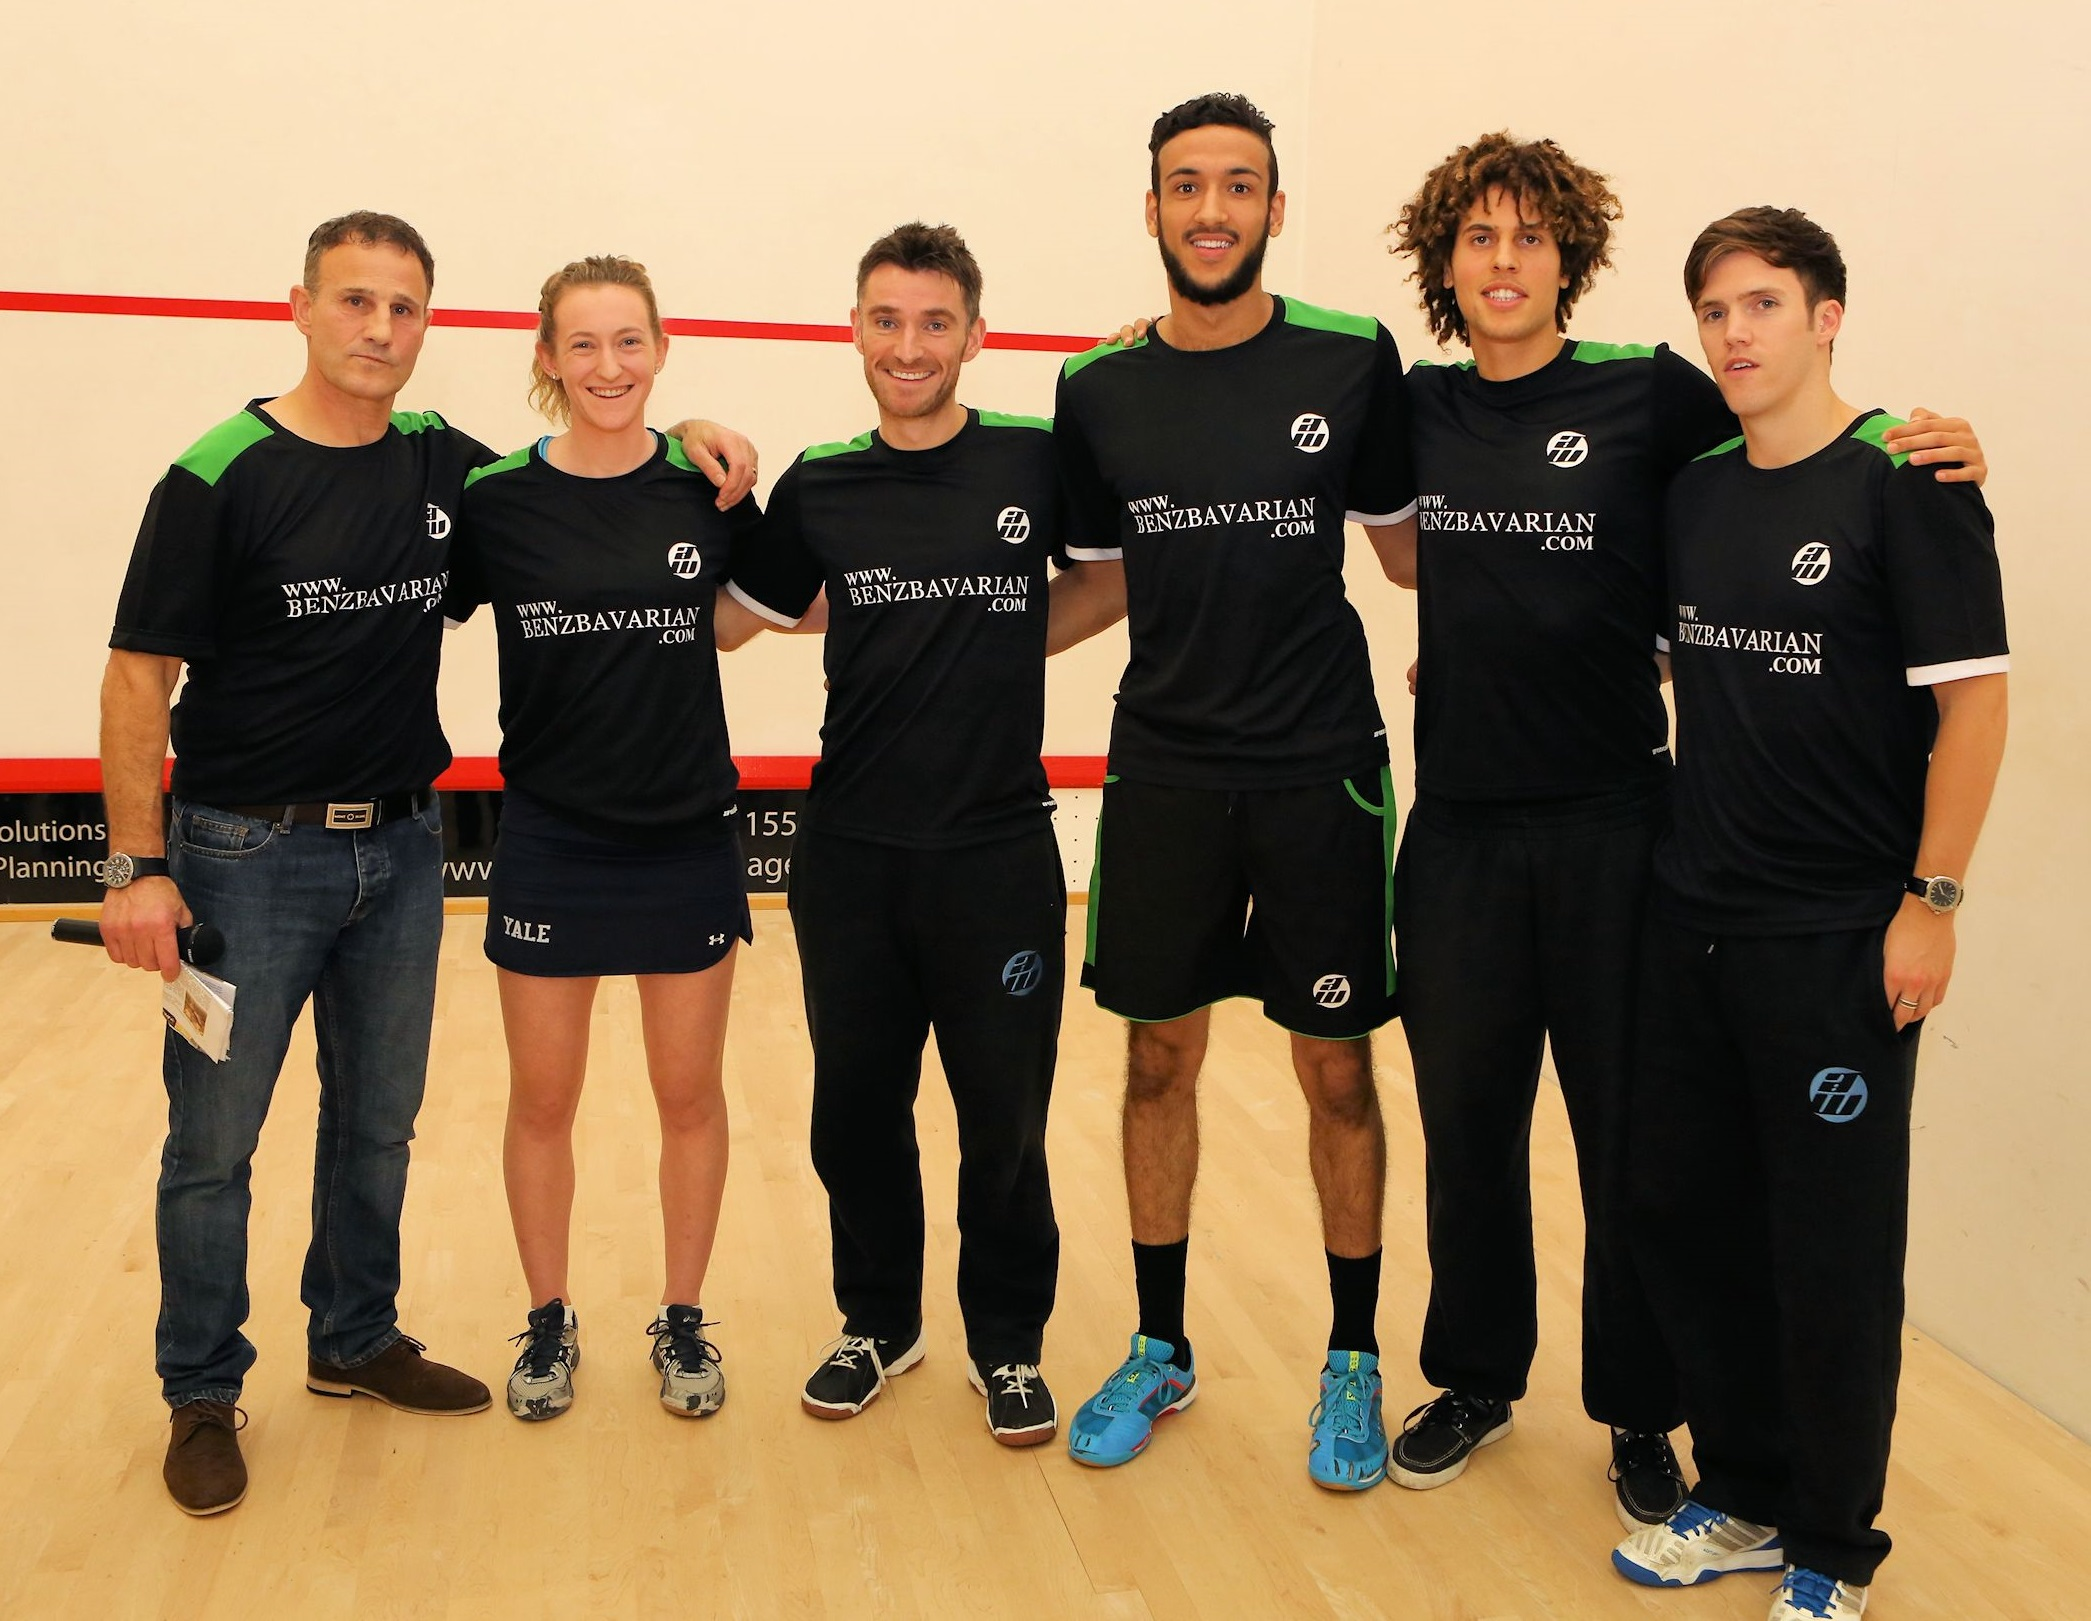 Team Squash and Team Selections